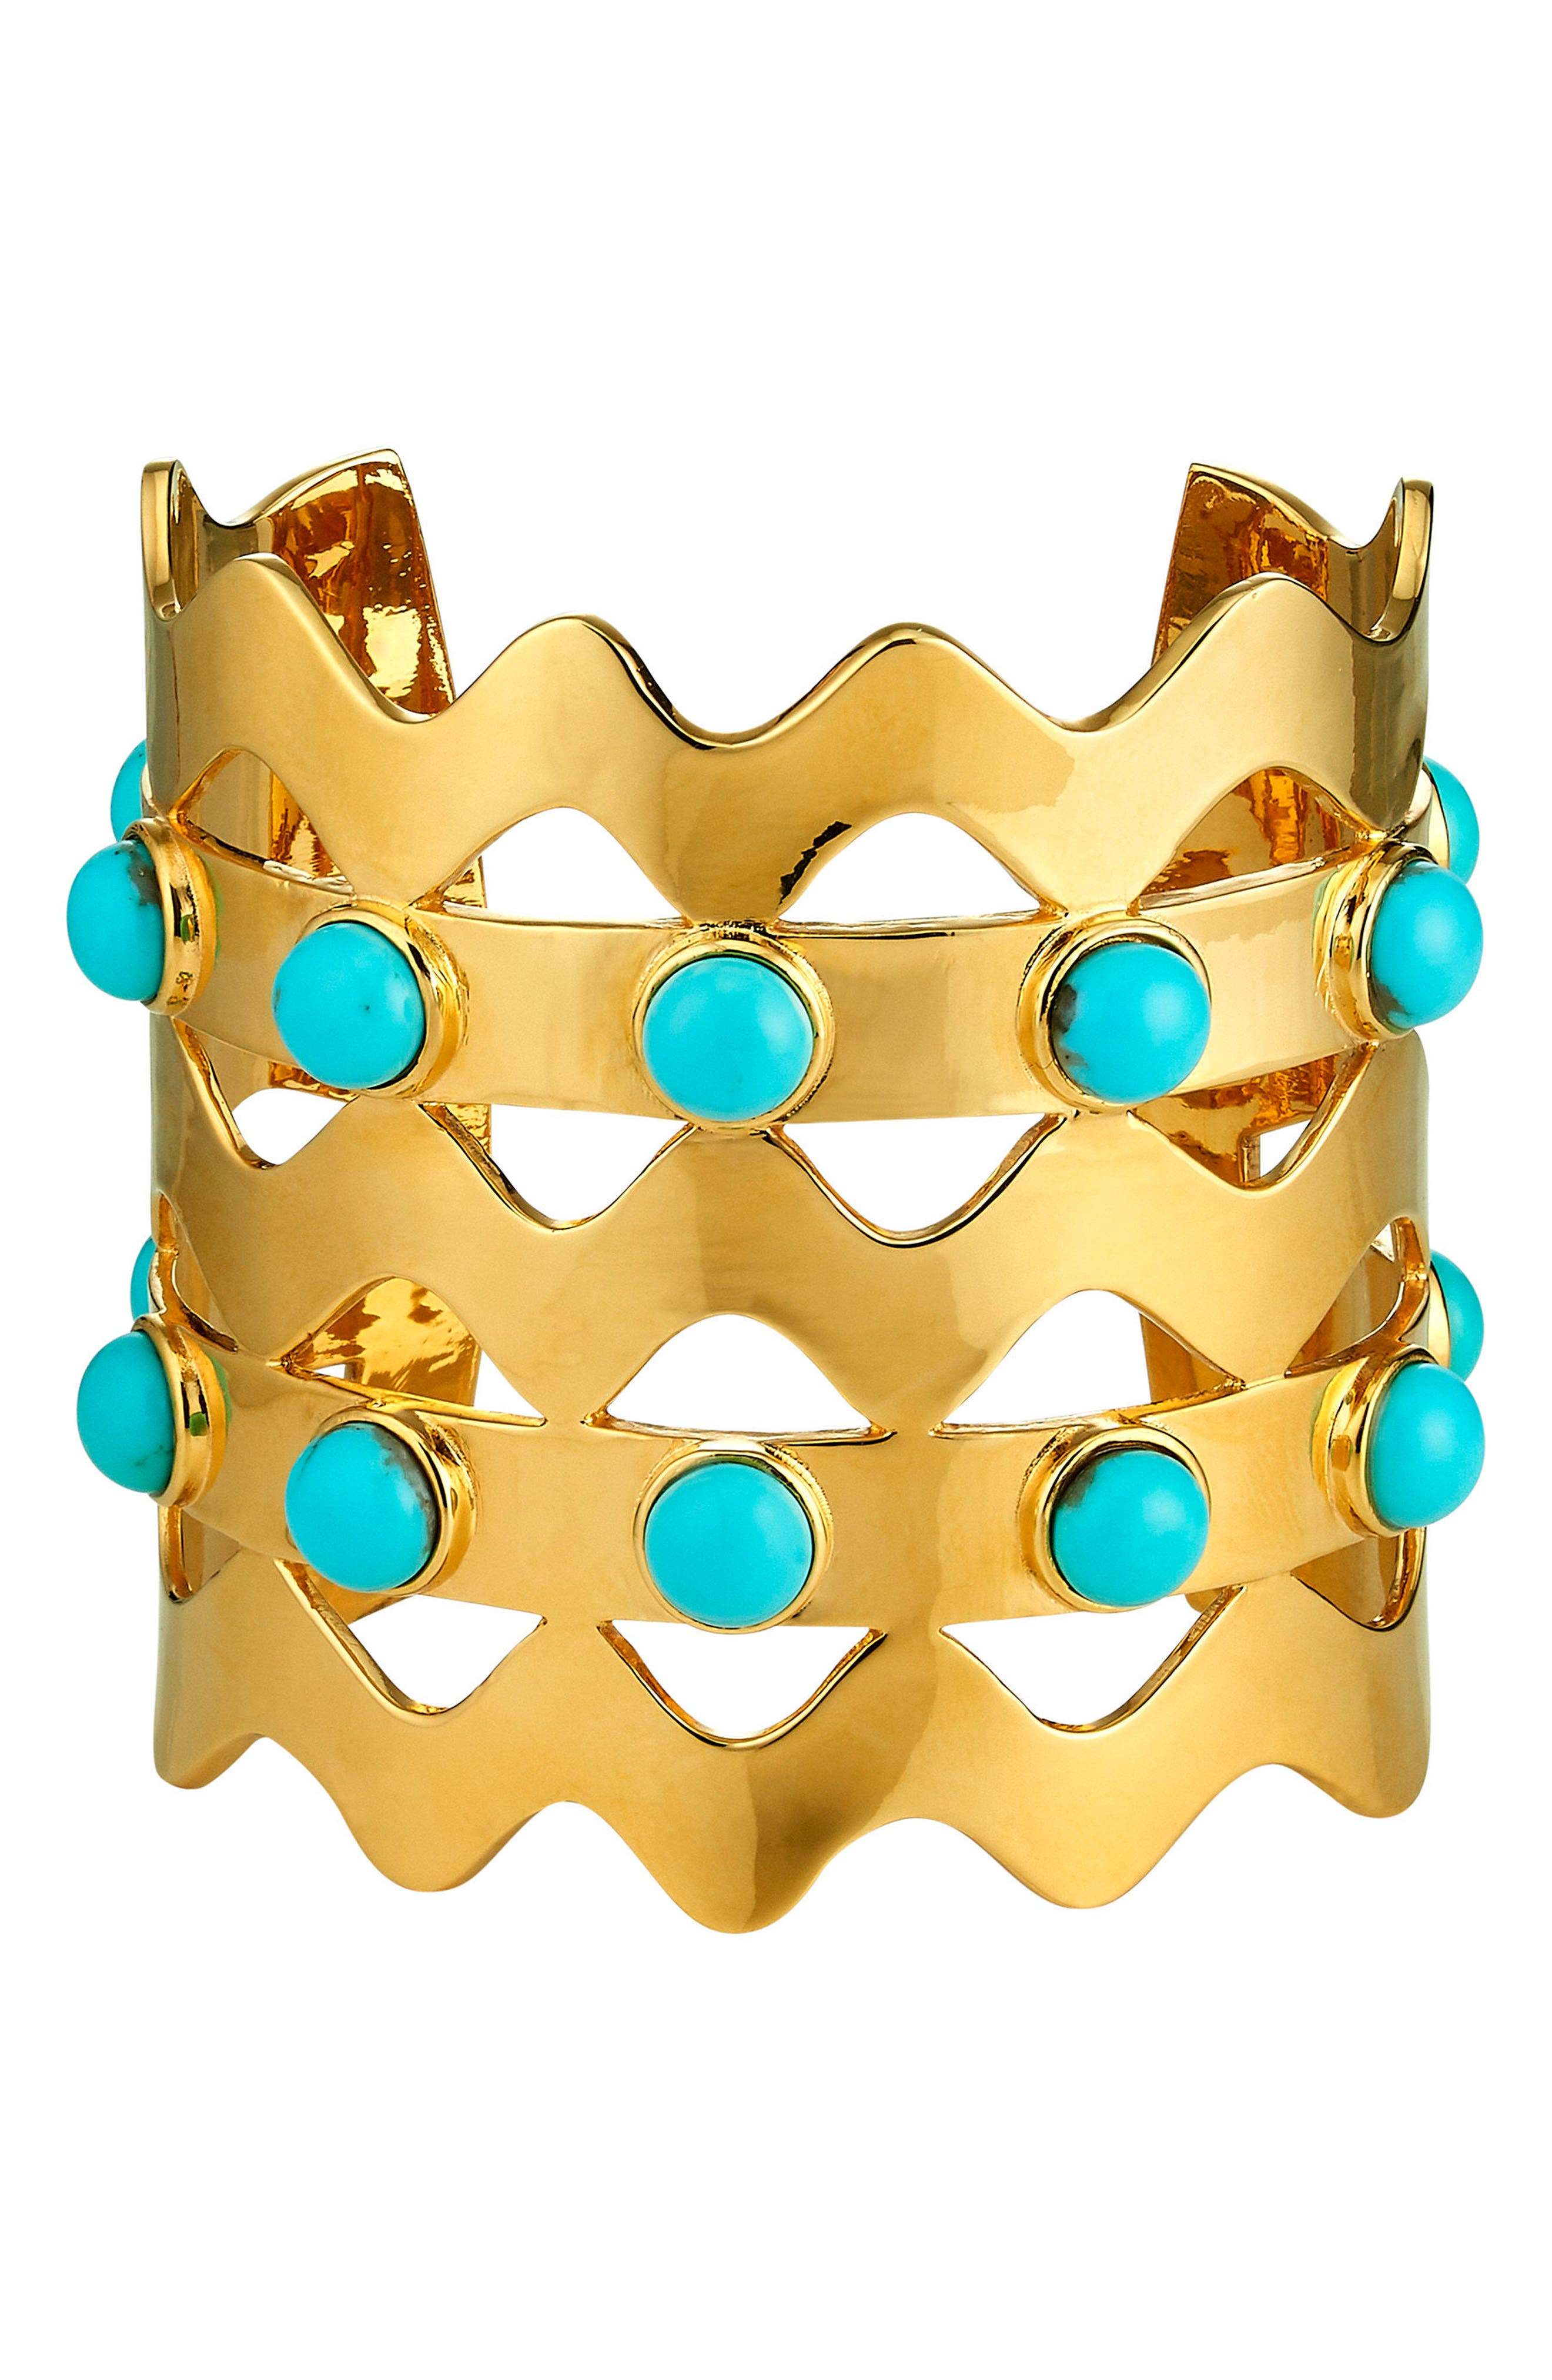 Jagger Cuff Bracelet,                         Main,                         color, TURQUOISE/ GOLD